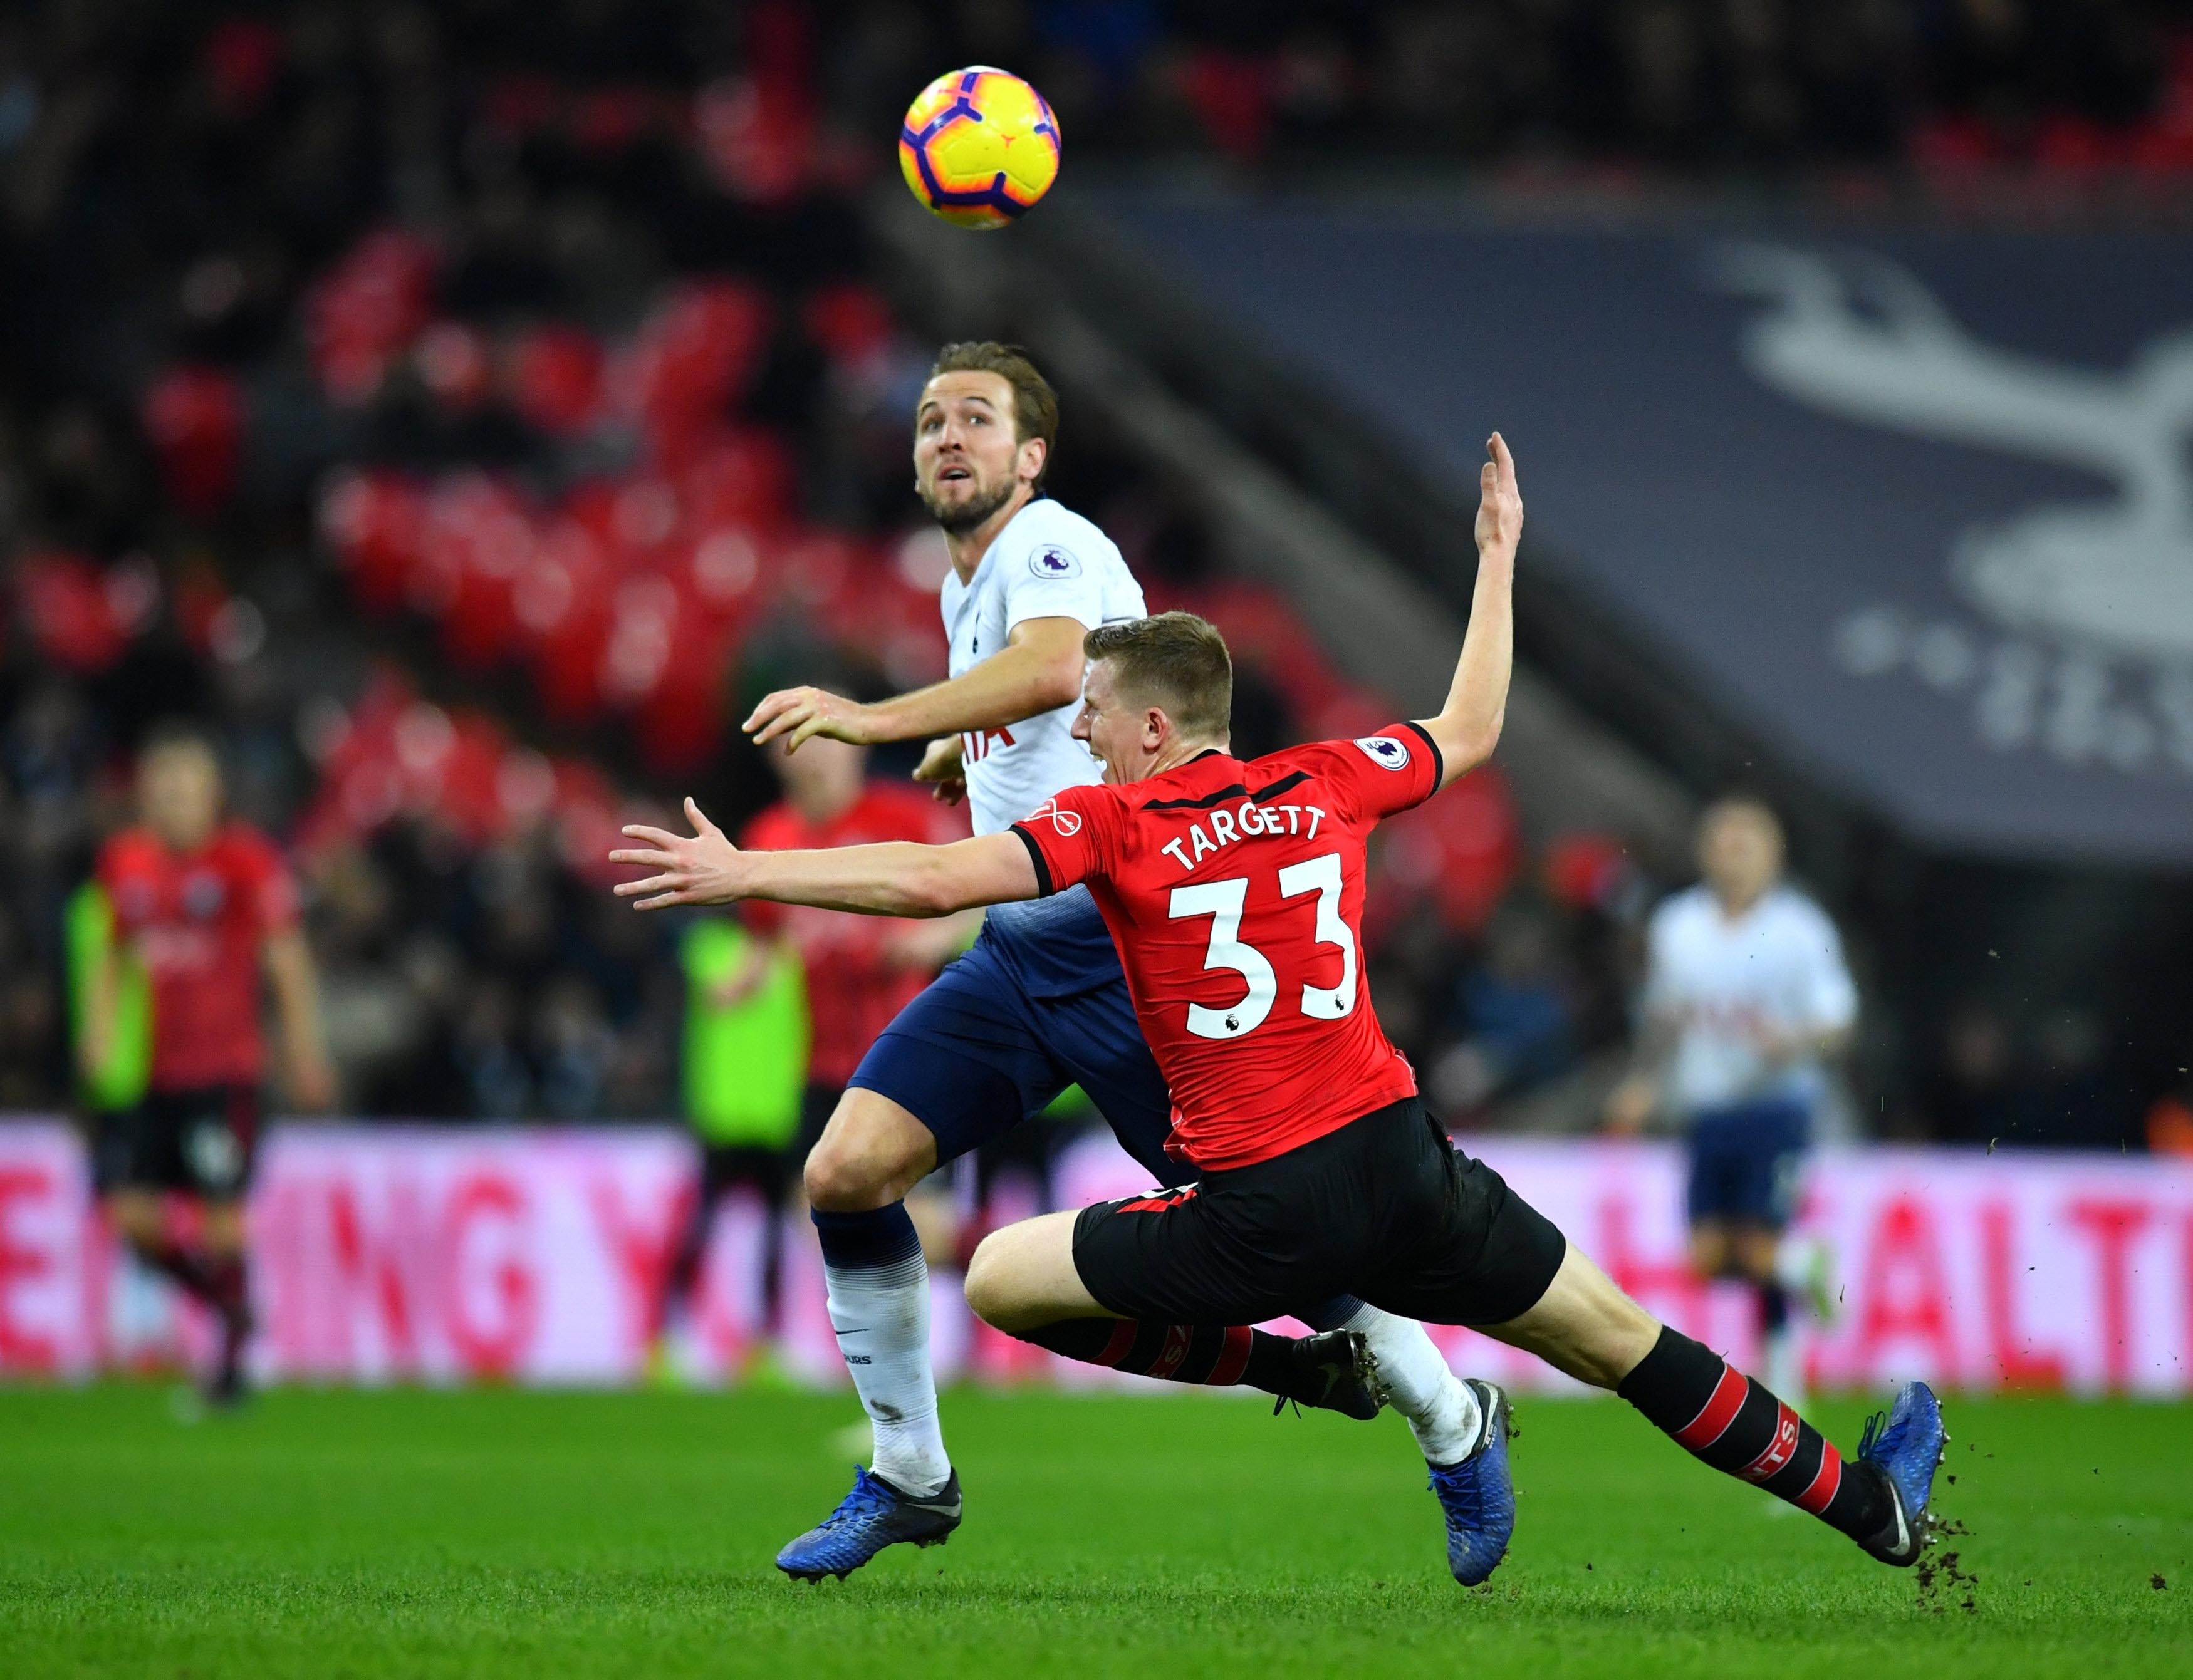 Tottenham's Harry Kane in action with Southampton's Matt Targett during the Premier League match between Tottenham Hotspur and Southampton, at Wembley Stadium, in London, Britain, on  December 5, 2018. Photo: Reuters